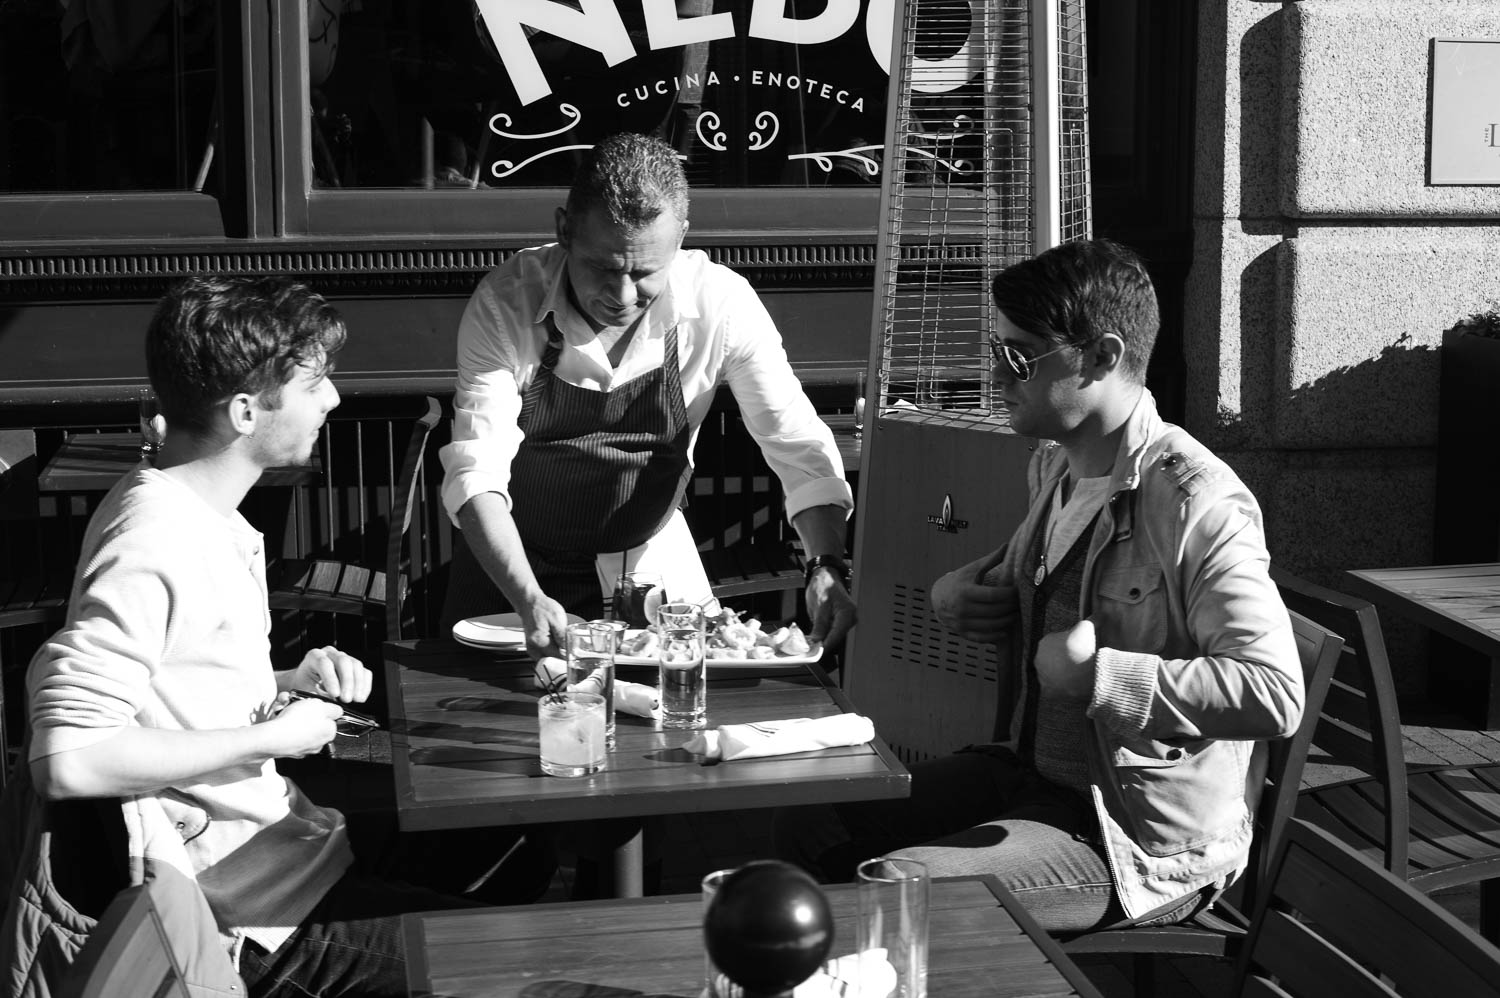 A waiter serves two men at an outdoor table in Boston